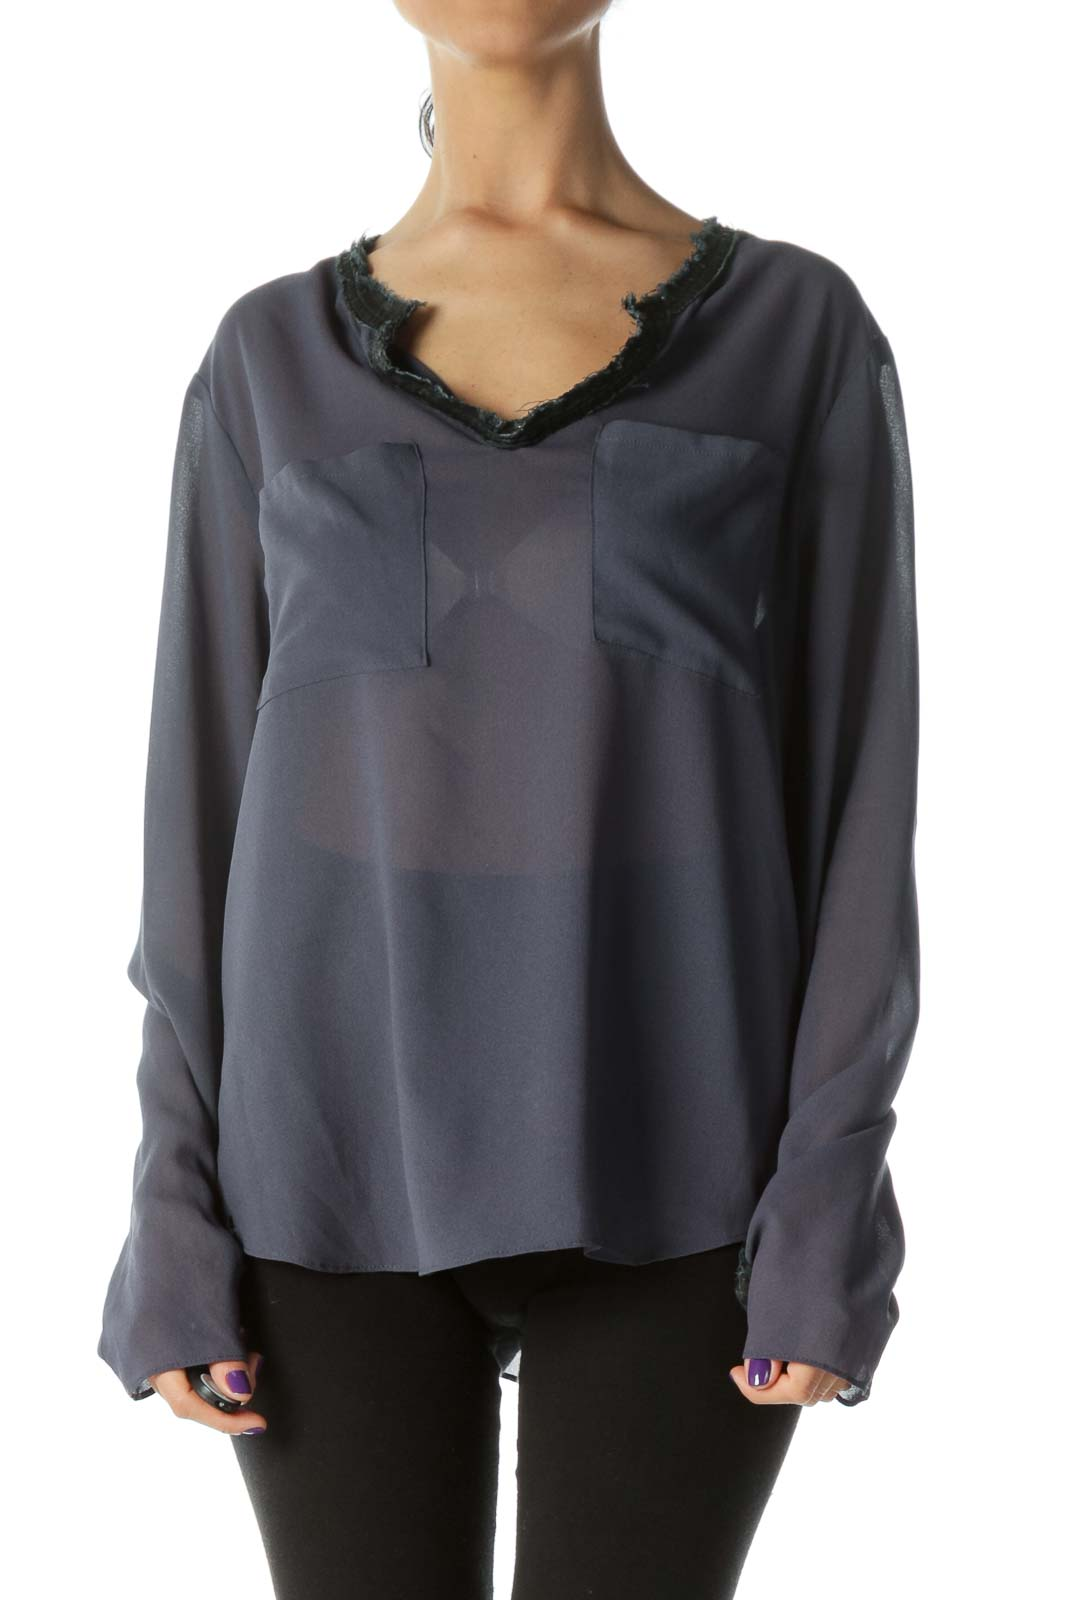 Navy Translucent Long-Sleeve Blouse with Faux-Leather Fringe Collar & Cuffs